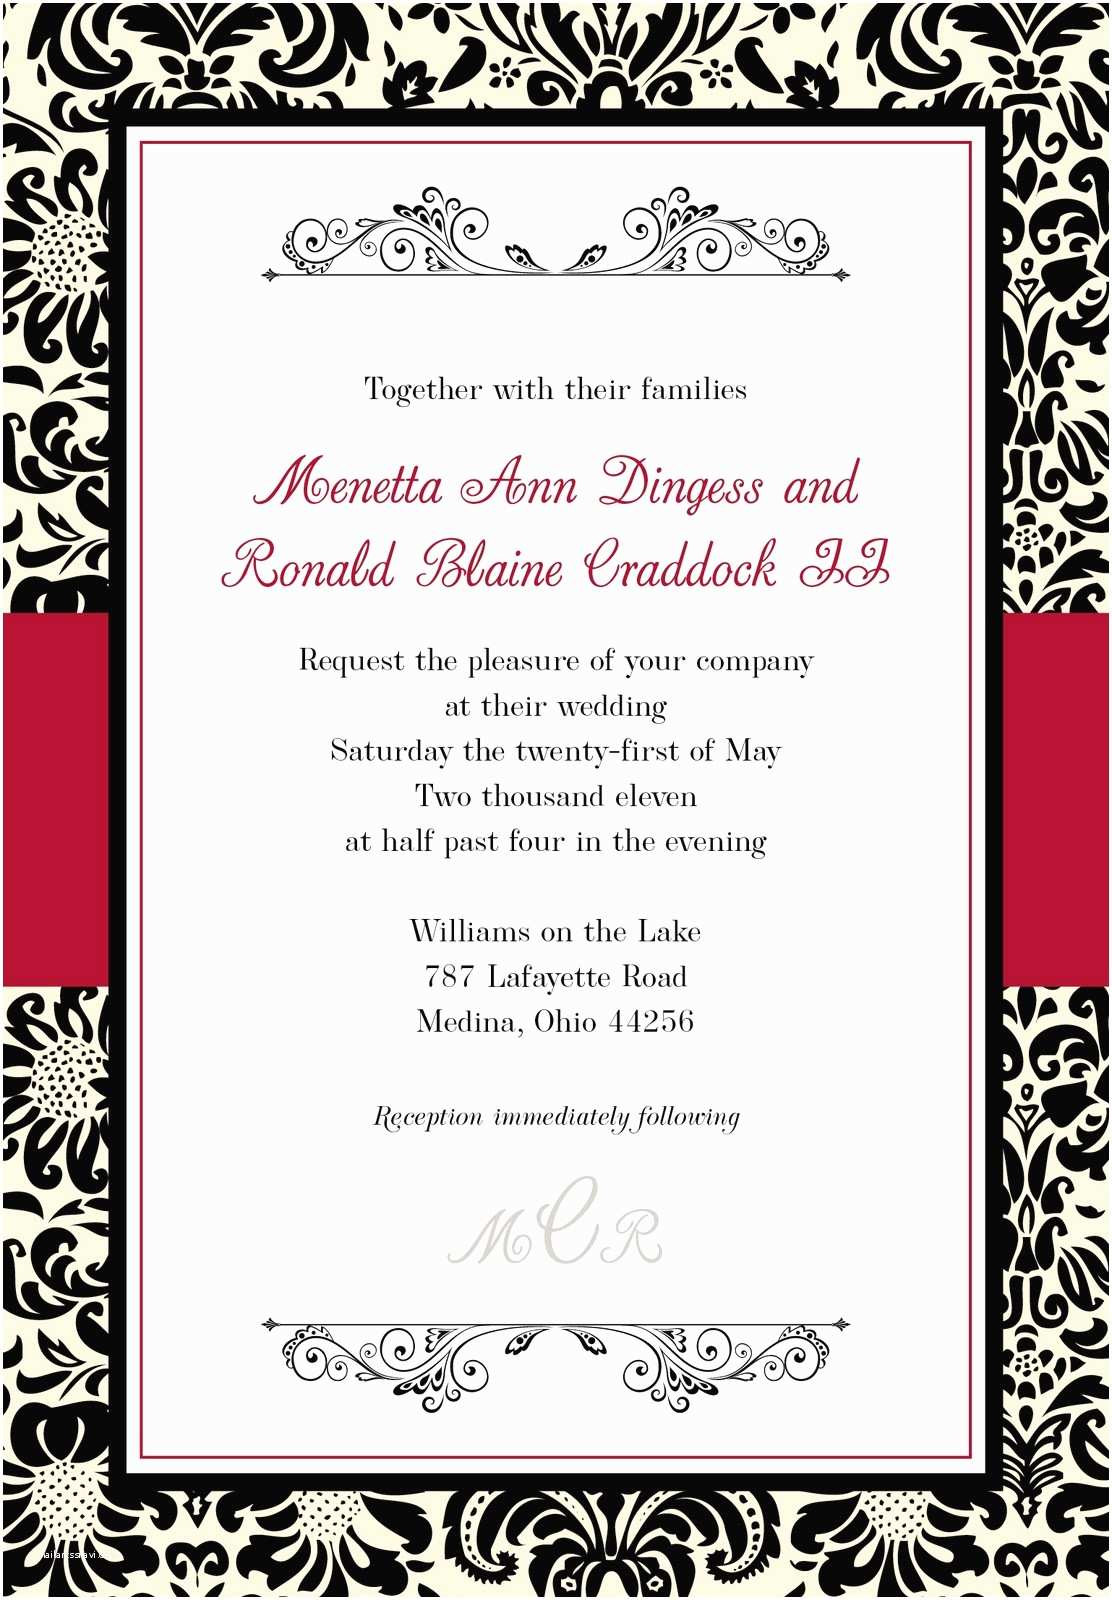 Red and White Wedding Invitations Black and Red Wedding Invitations Template